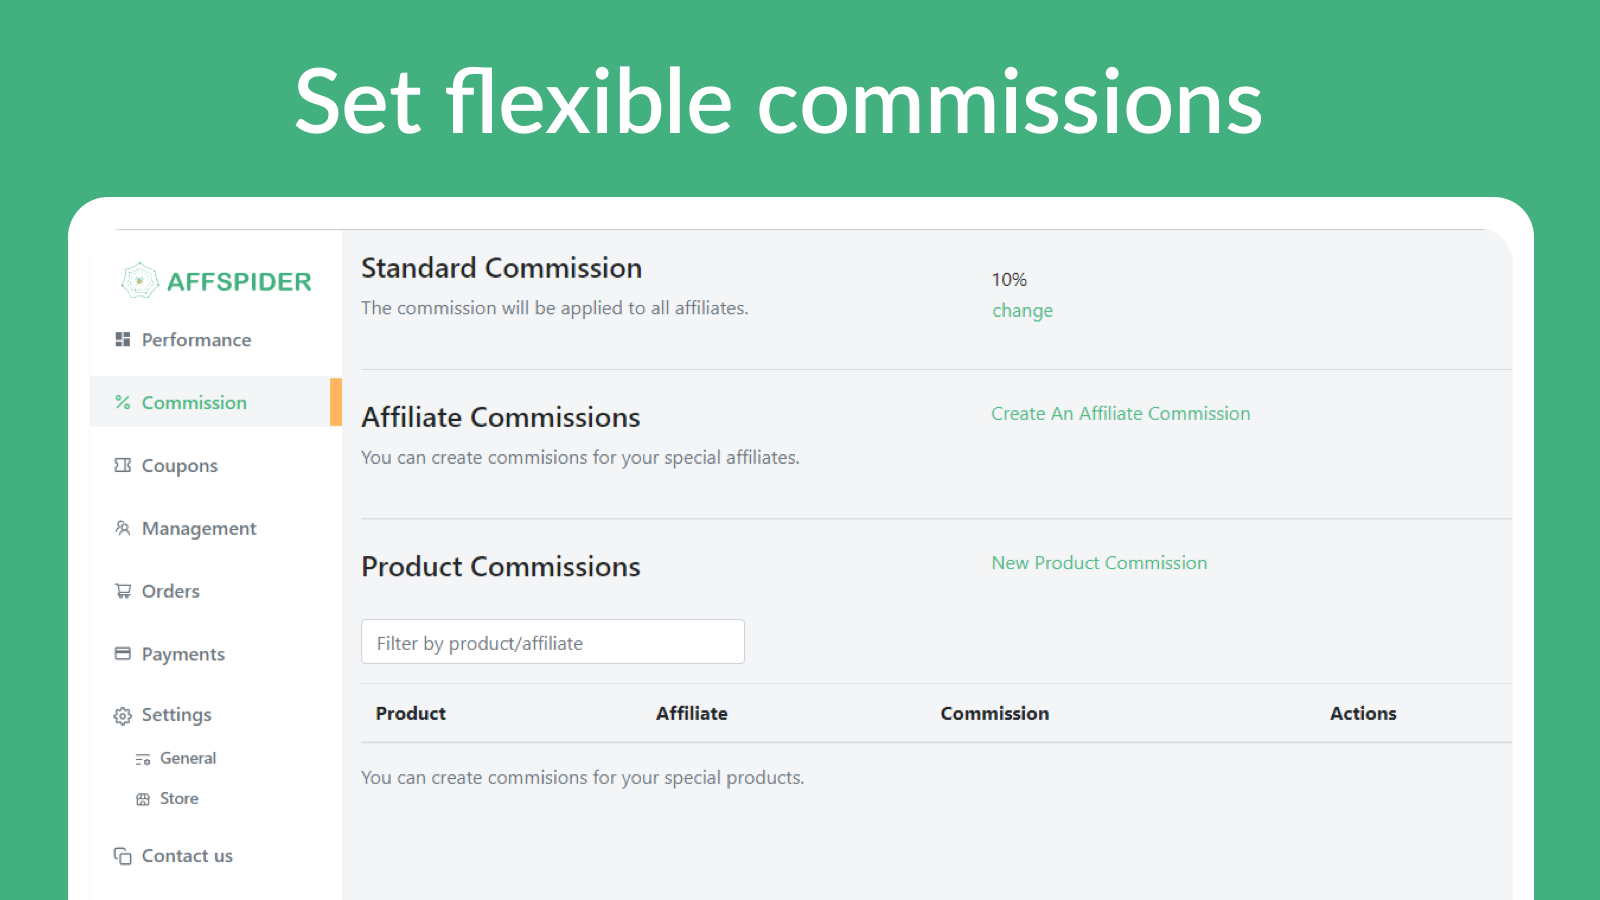 Fexiable ways to set up your commissions